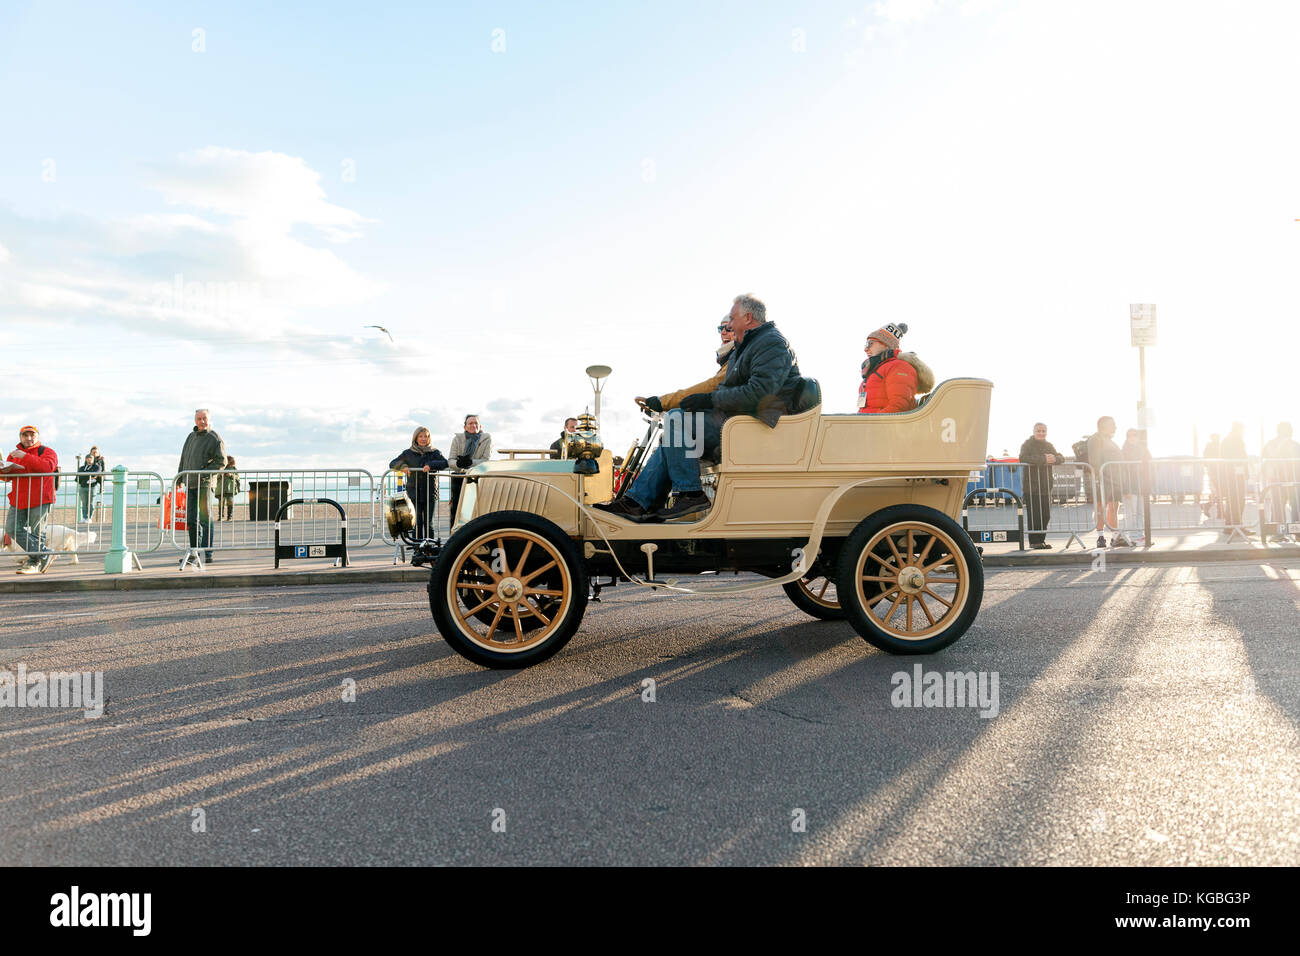 Bonhams London To Brighton Veteran Car Run 2017 Stock Photos ...